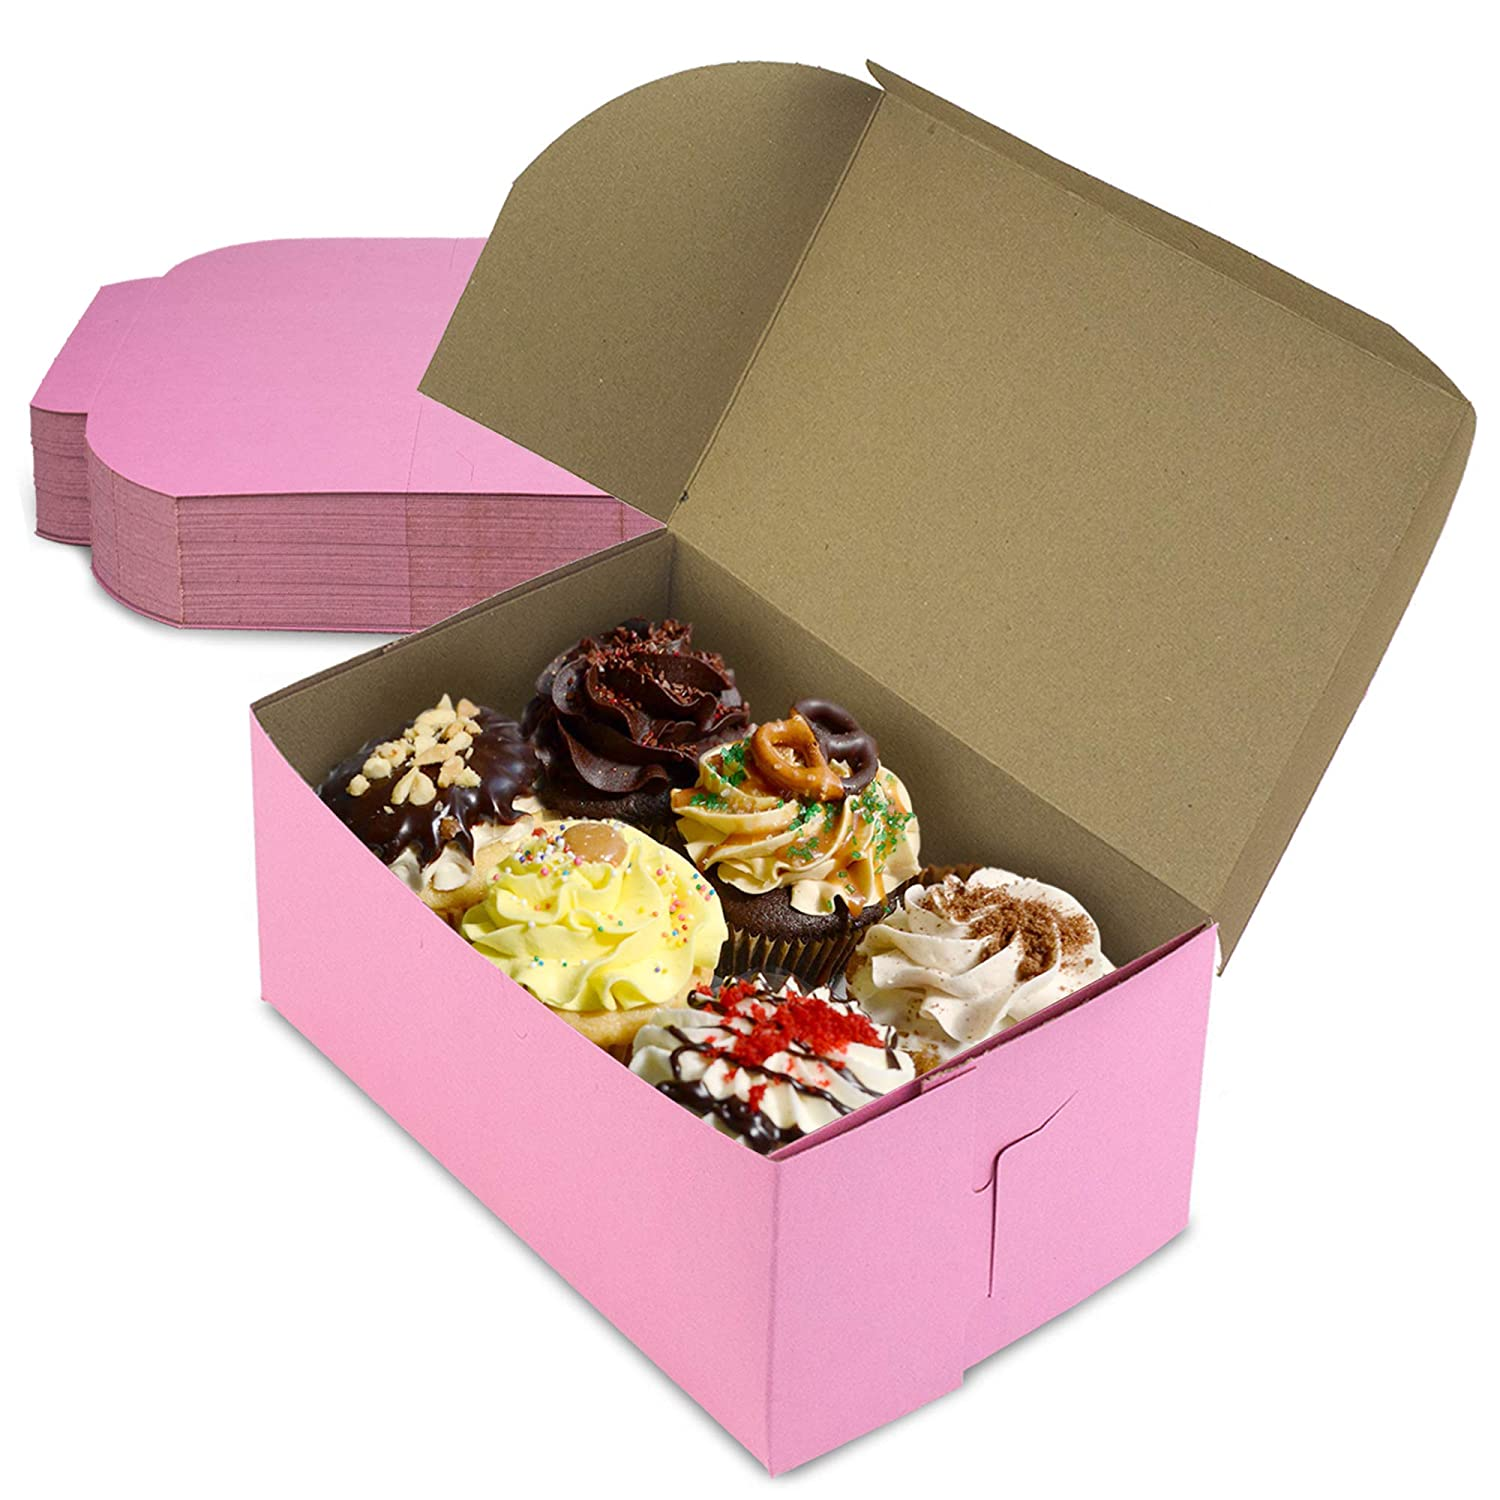 [25 Pack] Pink Bakery Boxes - 8 x 5 x 3.5 Inches Pink Cake Boxes - Pastry Box for Cupcakes, Desserts, Cookies, Candies - Ideal Packaging for Bakeries and Home-Made Baked Treats, Favors, and Gifts